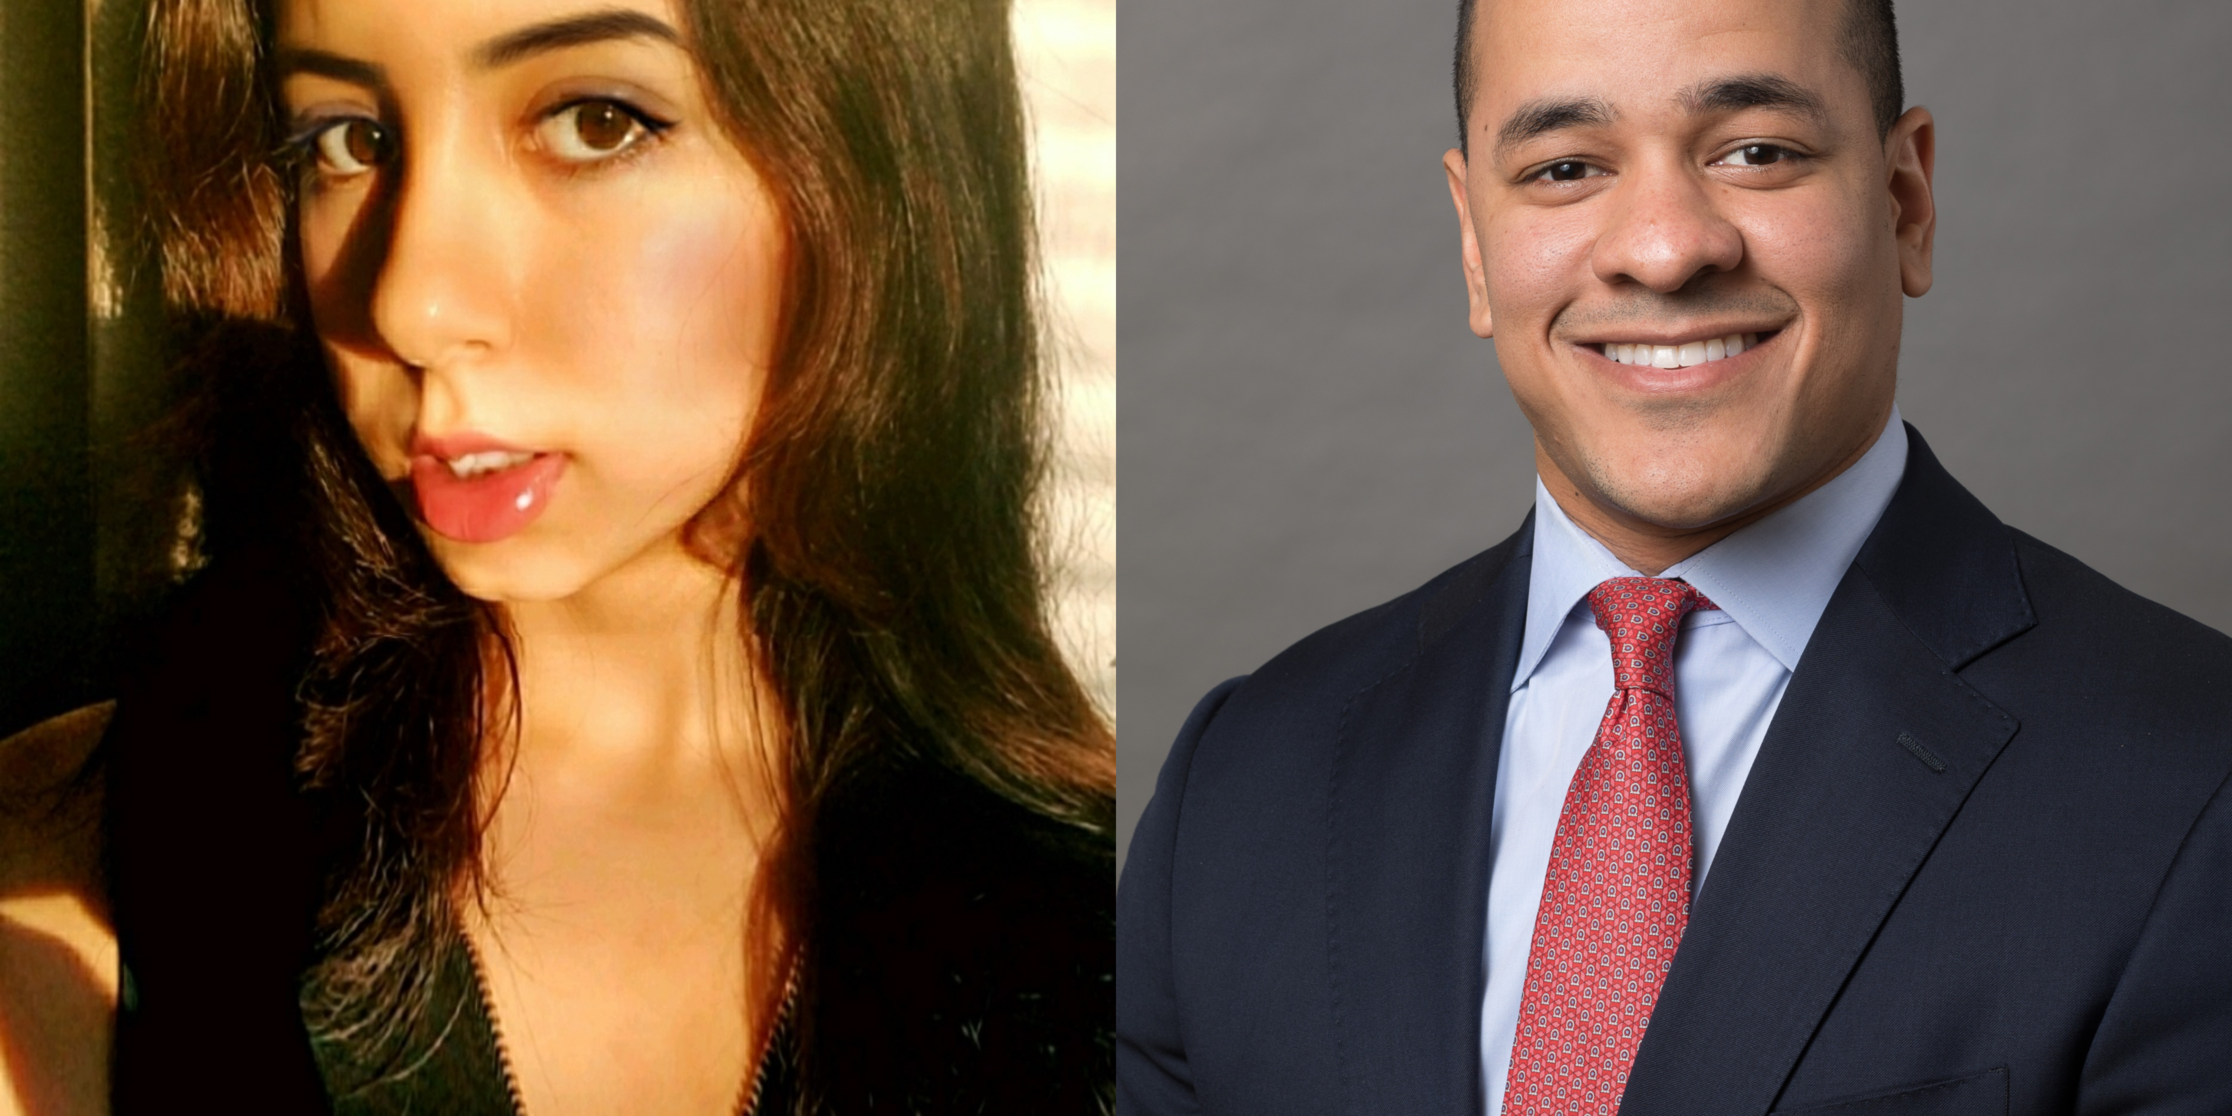 Anya Thakur, (the author) left and Triston Francis, (Student Body Co-President at Harvard Business School) right.